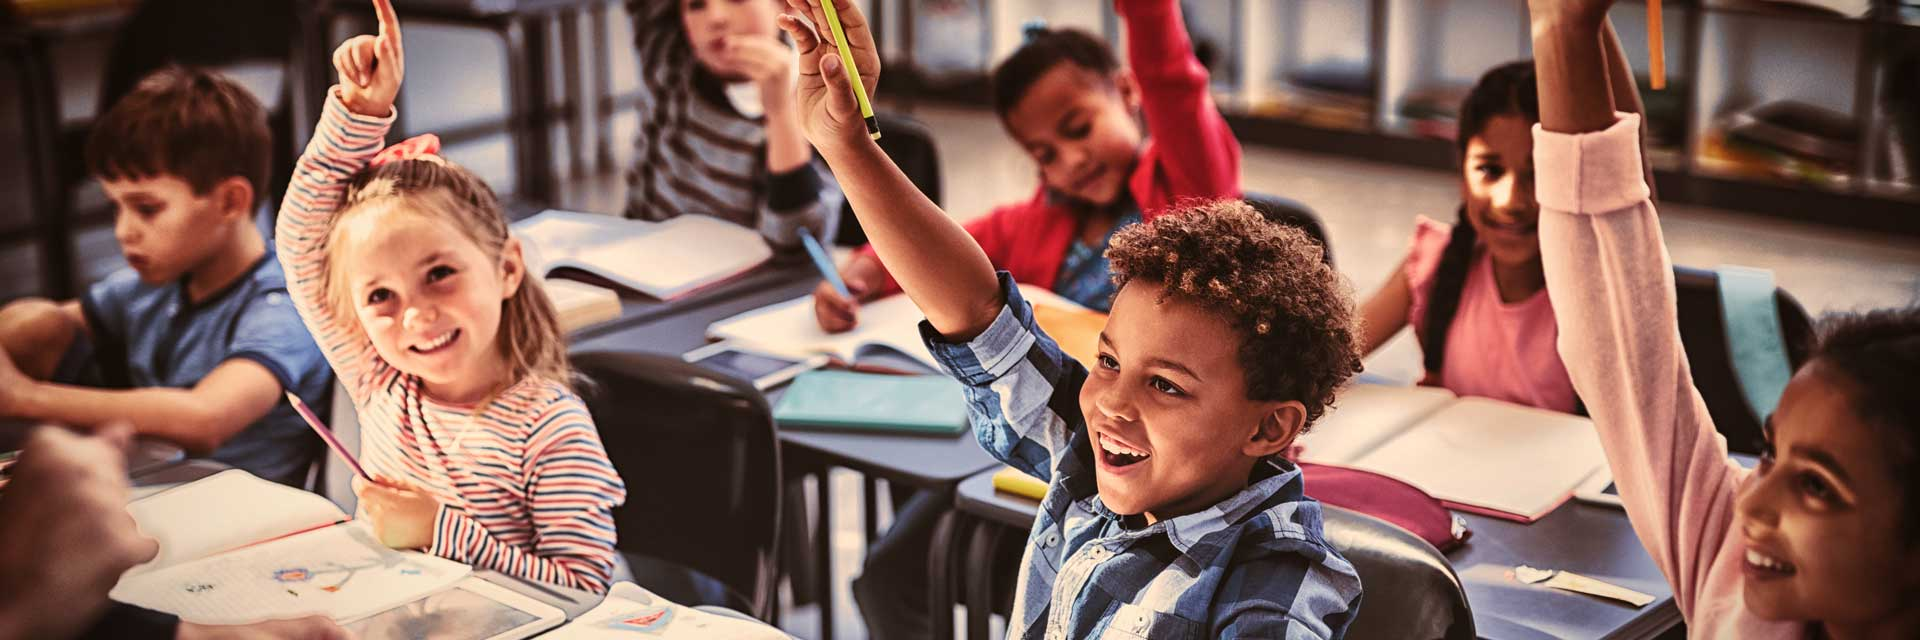 Children in a classroom with their hands up